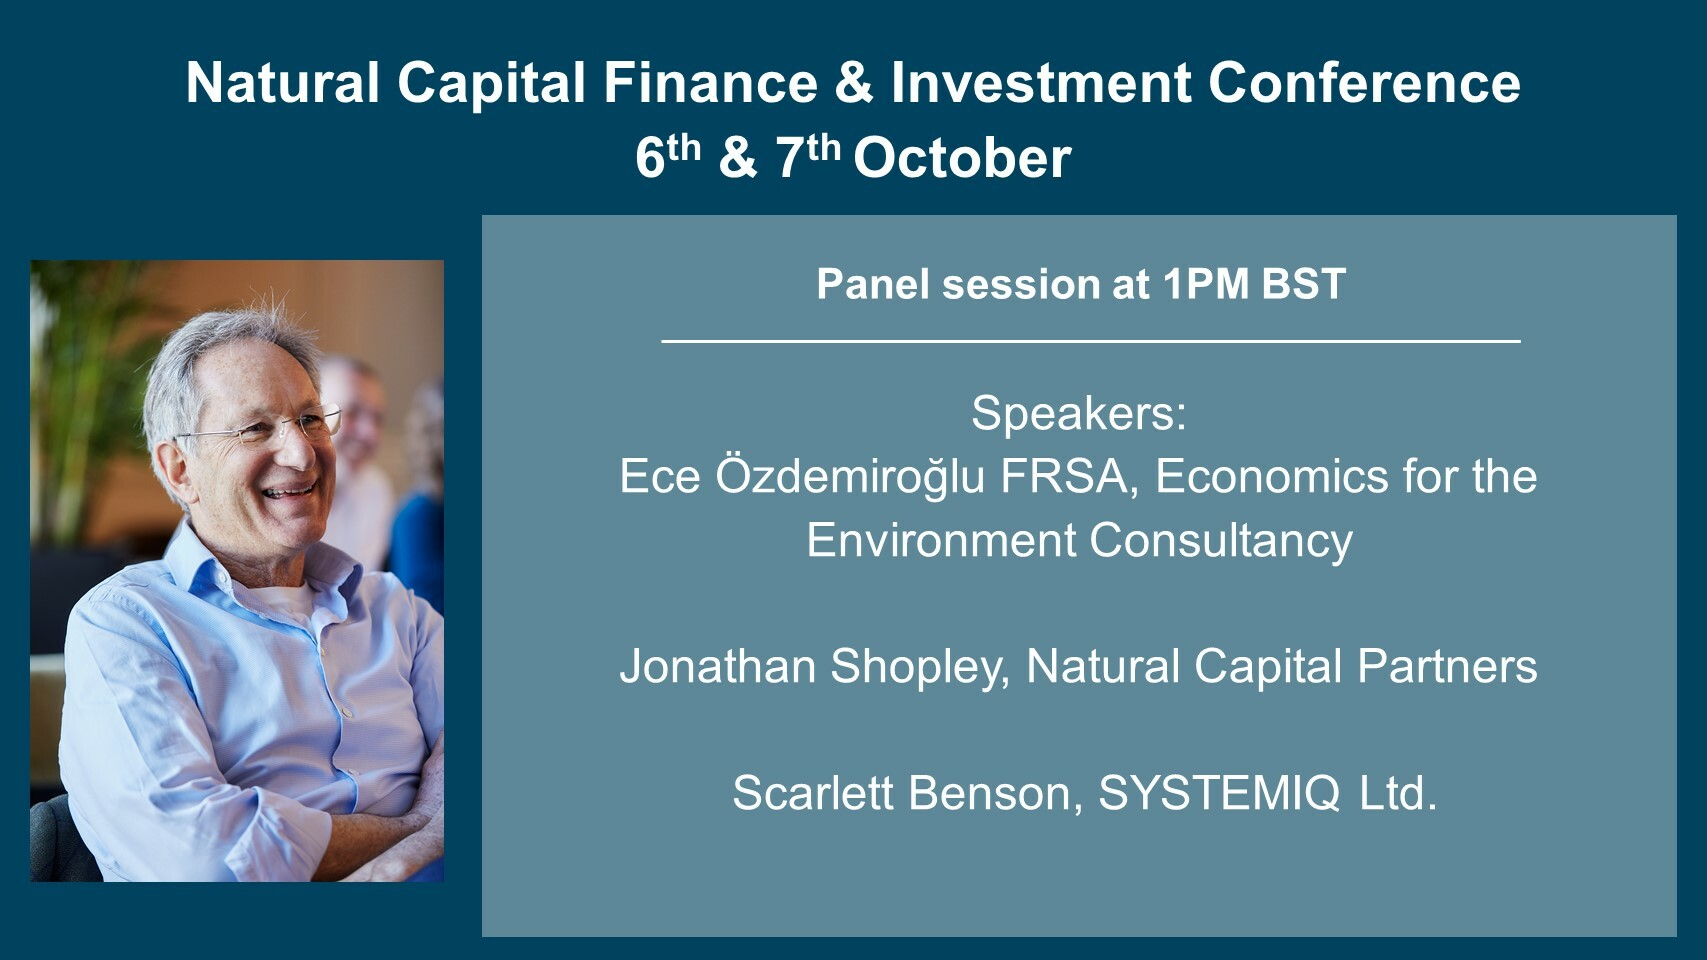 Natural Capital Finance & Investment Conference